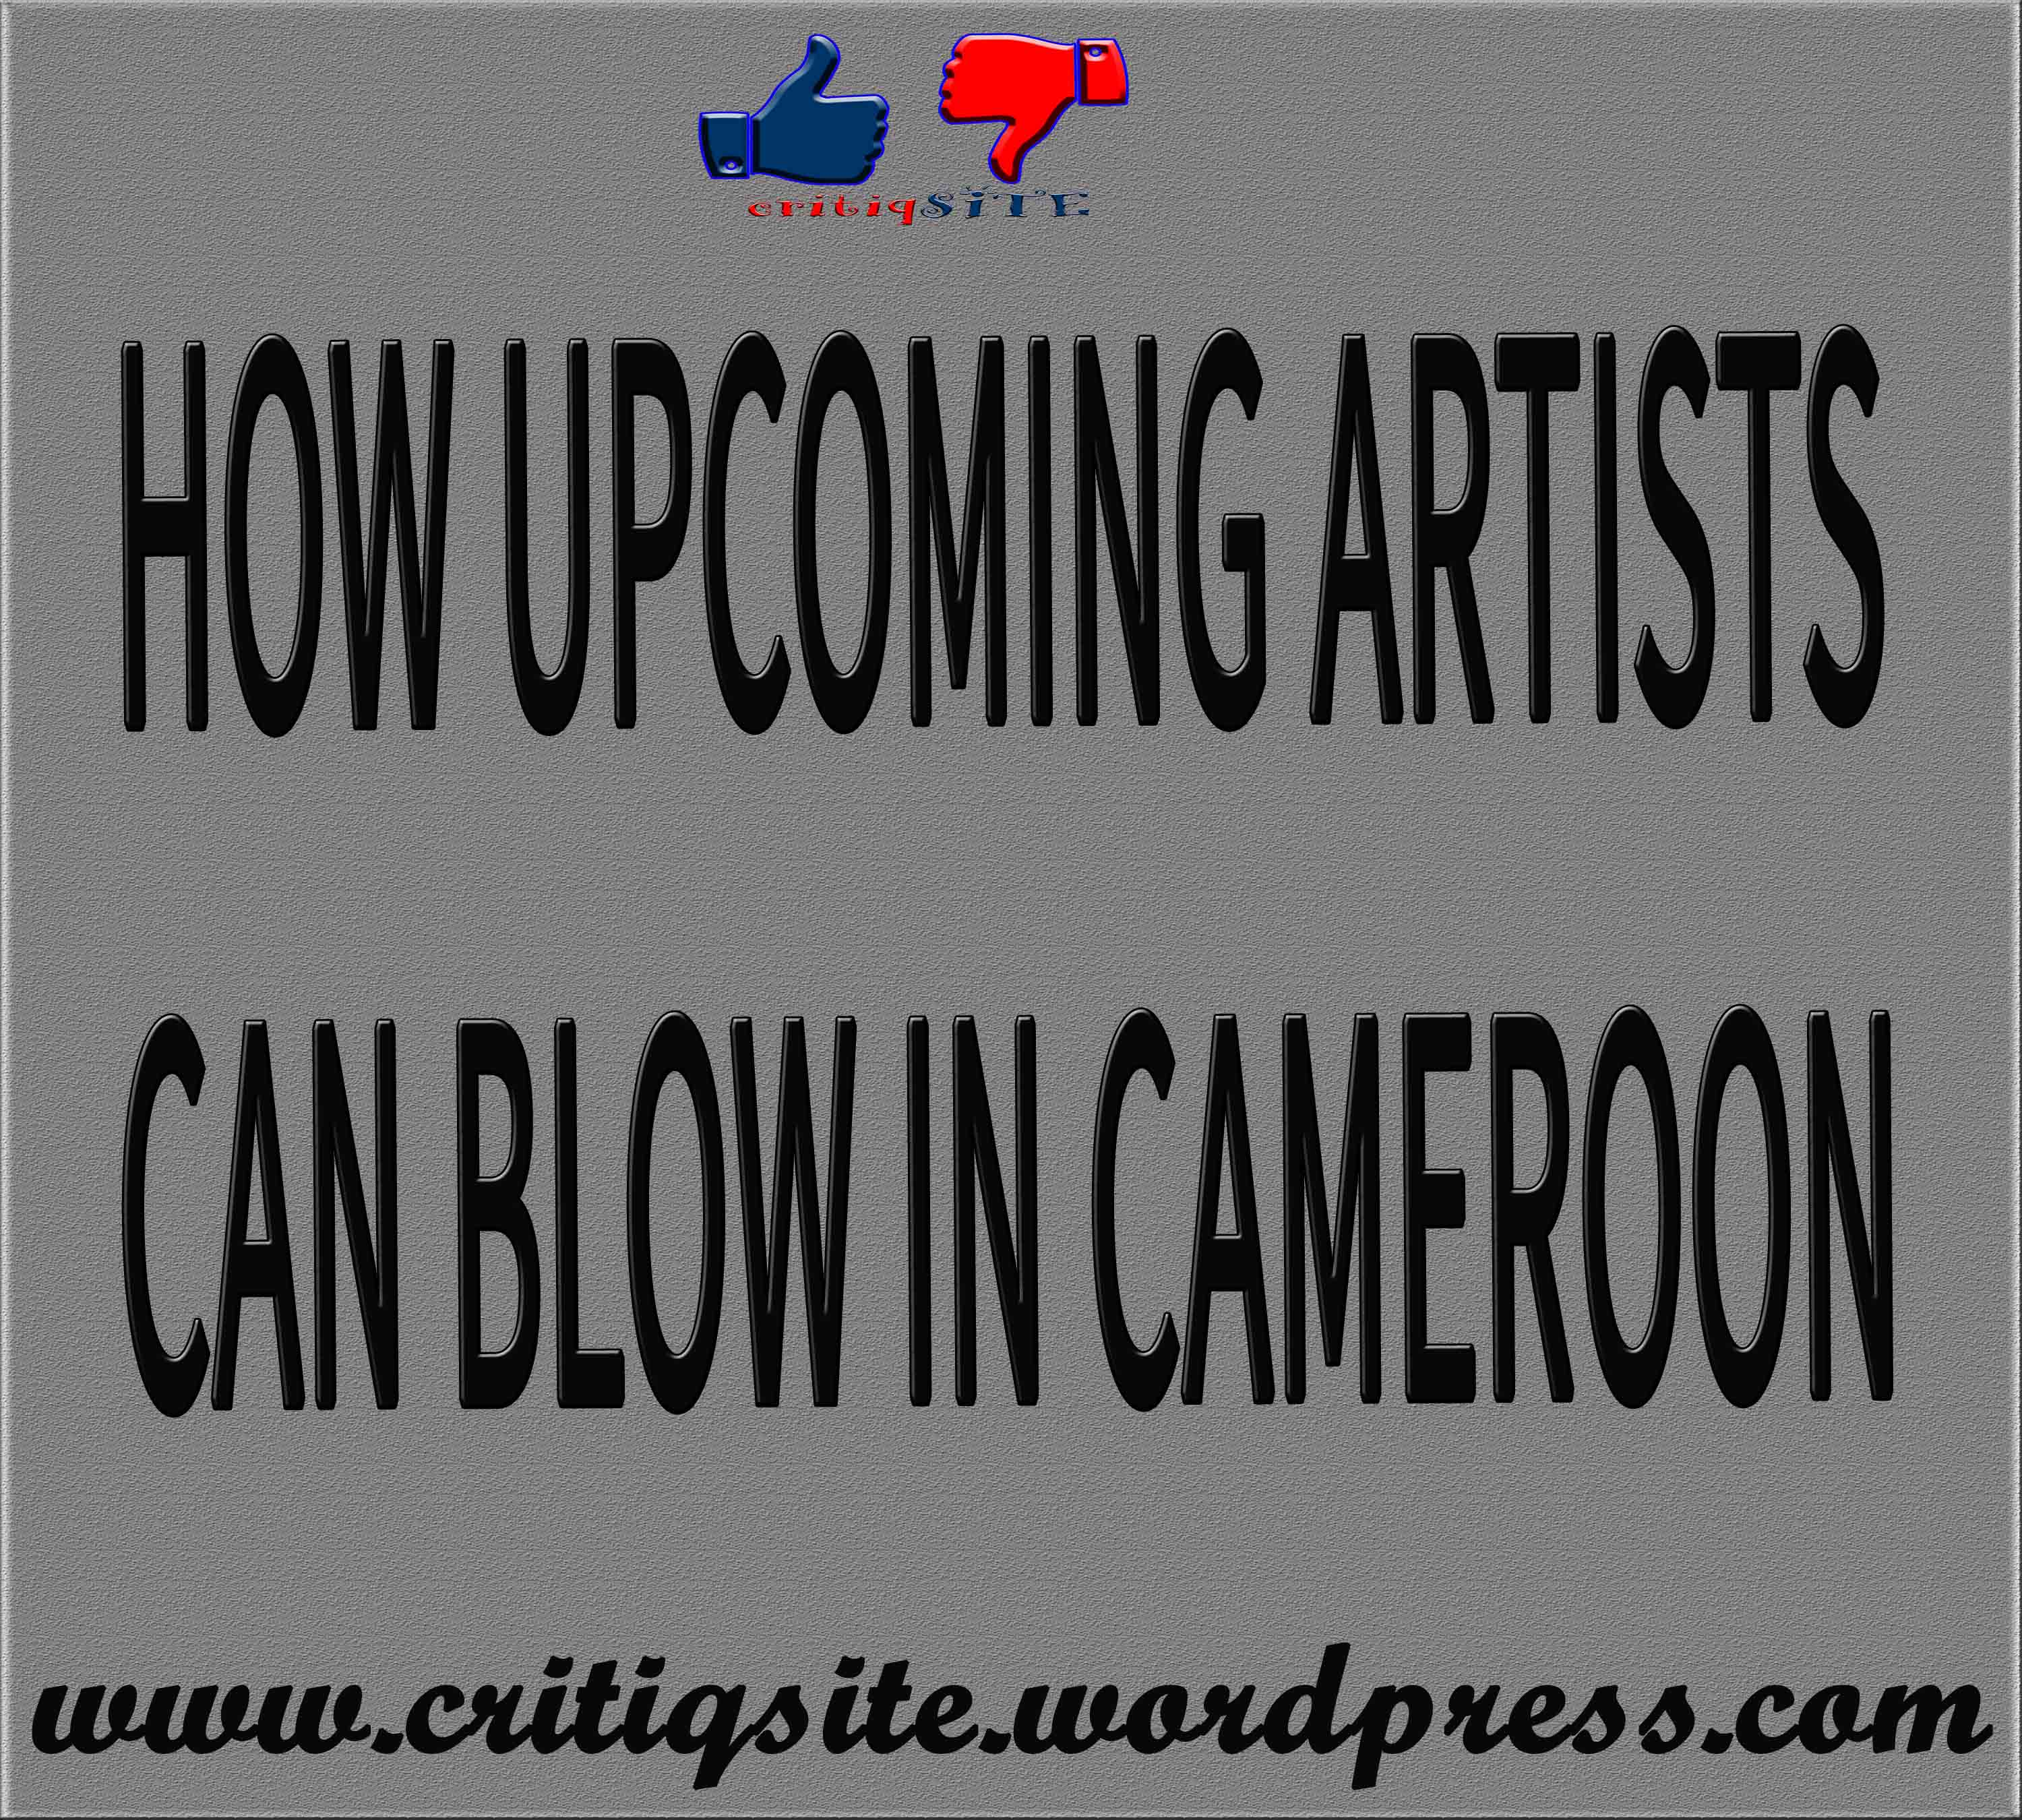 HOW UPCOMING ARTISTS CAN BLOW IN THE CAMEROONIAN MUSIC INDUSTRY